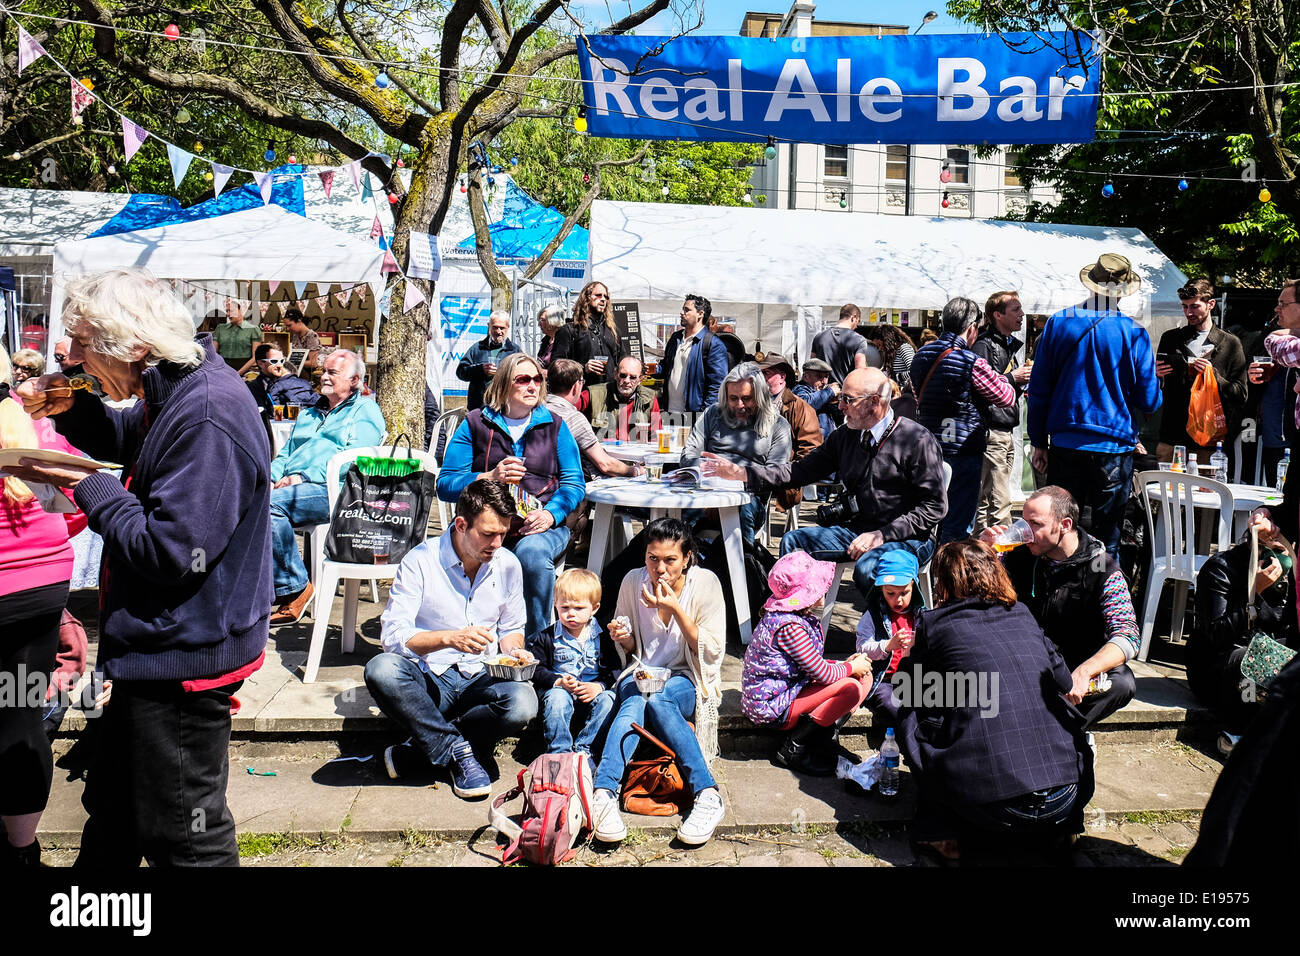 People eating and drinking in the sunshine. - Stock Image